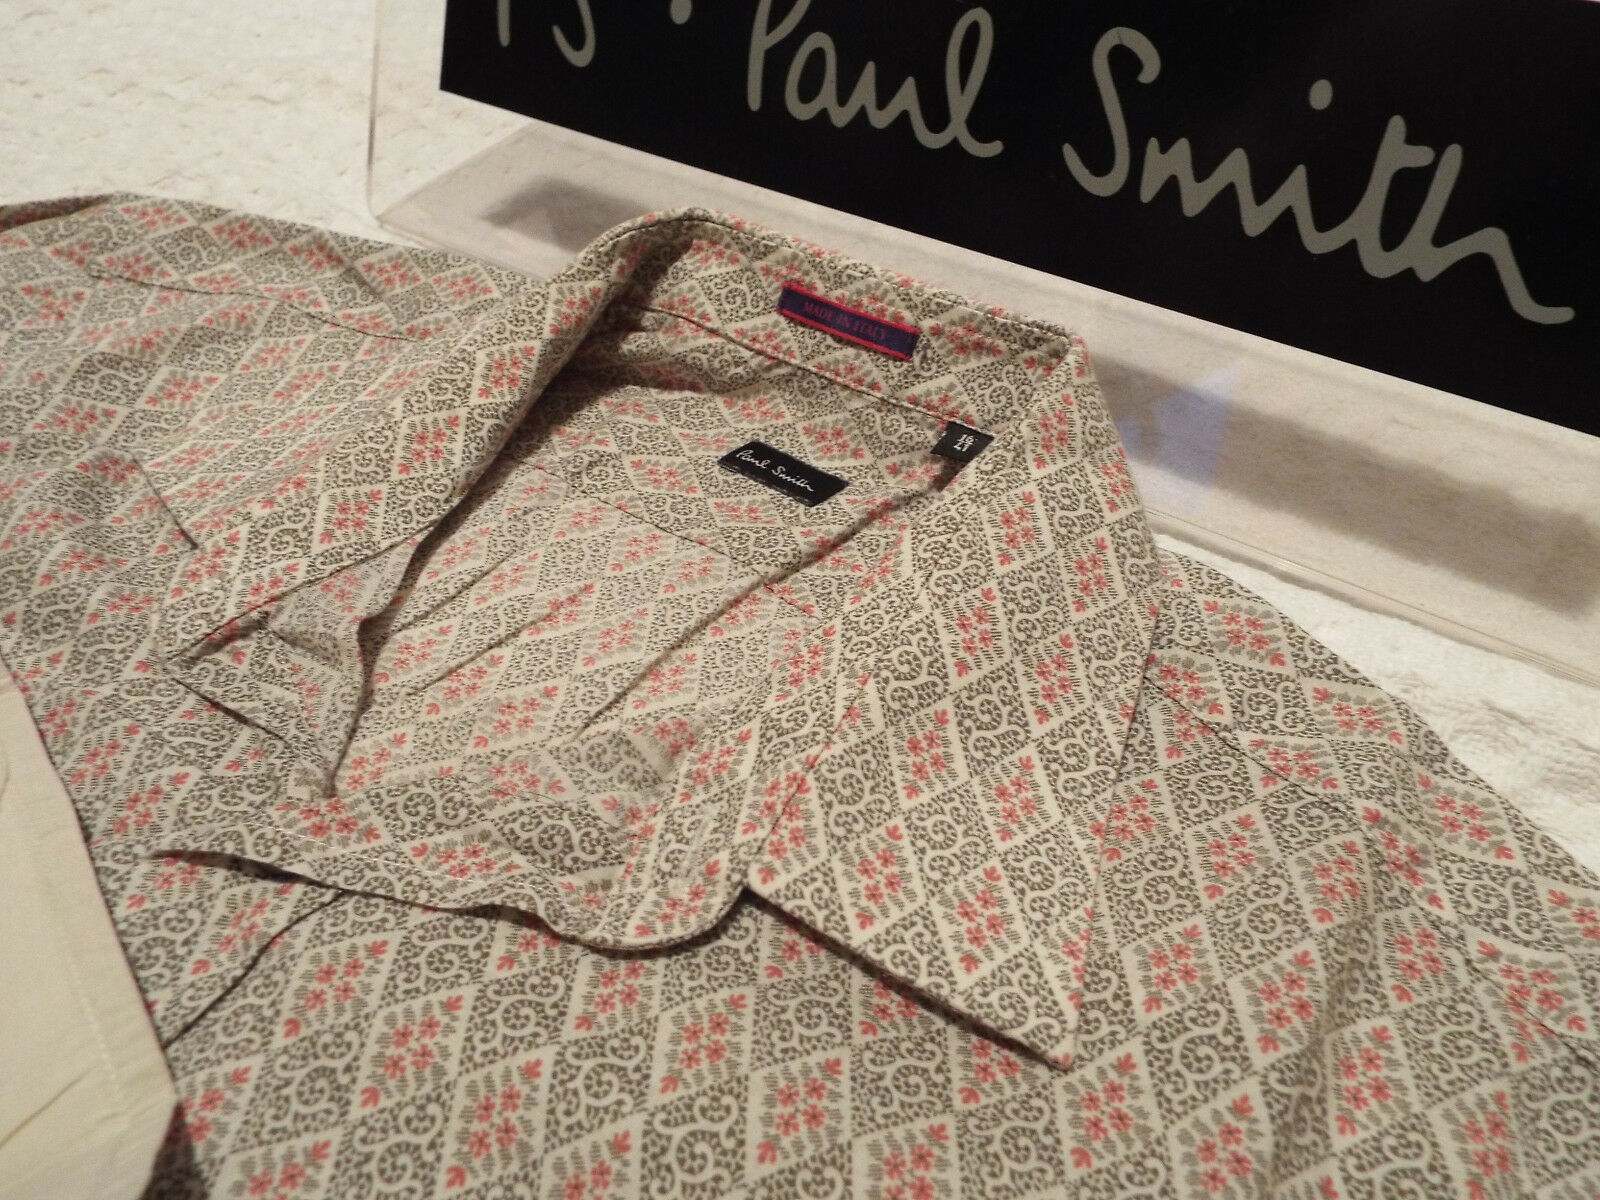 PAUL SMITH Mens Shirt  Size 16  (CHEST 42 )  RRP + FLORAL DIAMOND STYLE